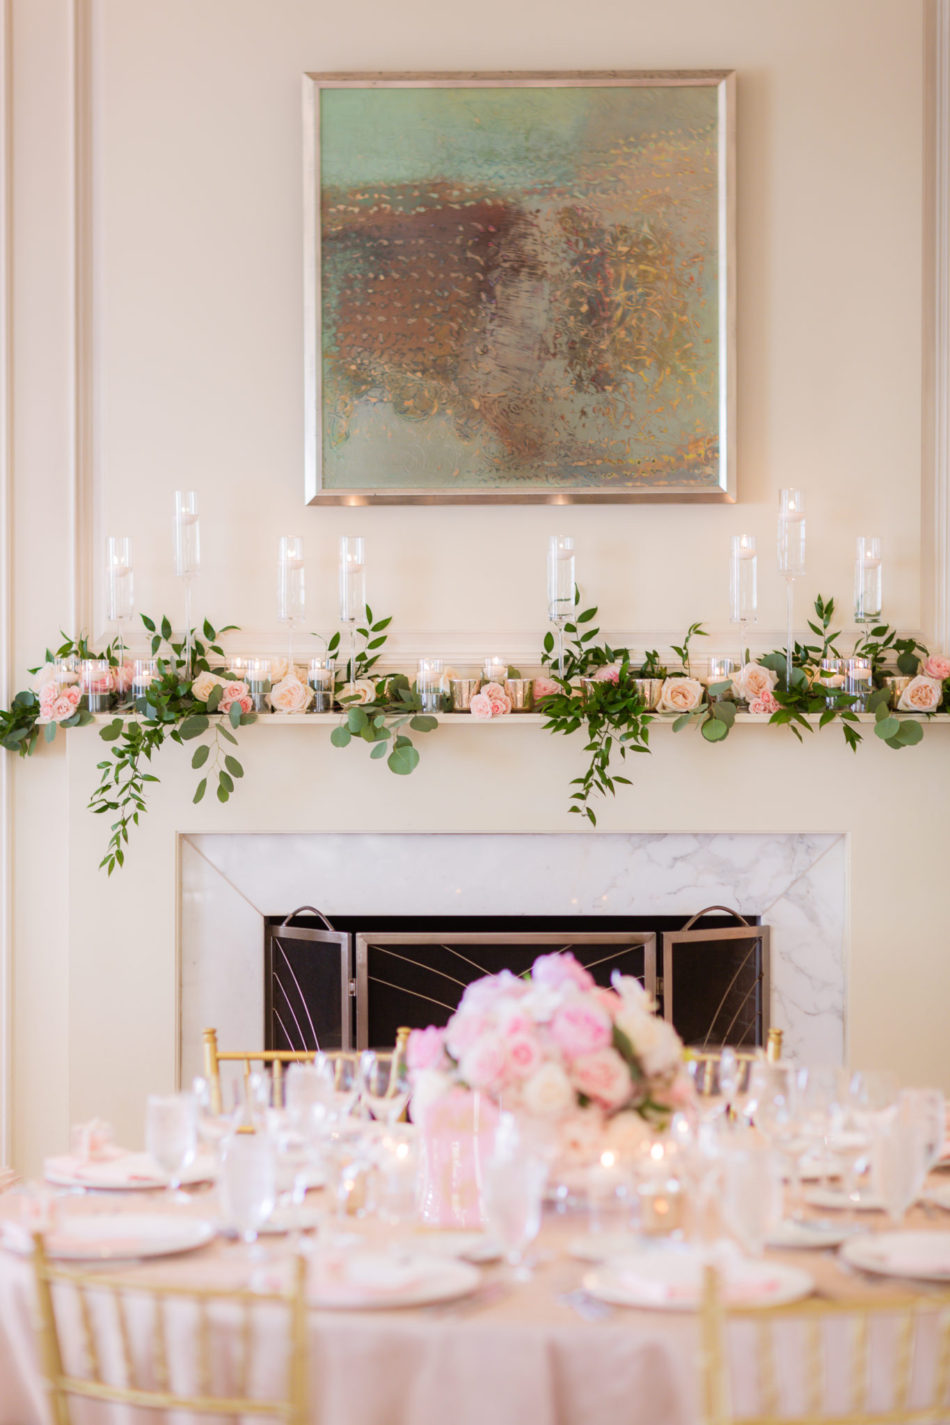 pink wedding decor, pink reception decor, pink florals, floral design, florist, wedding florist, wedding flowers, orange county weddings, orange county wedding florist, orange county florist, orange county floral design, flowers by cina